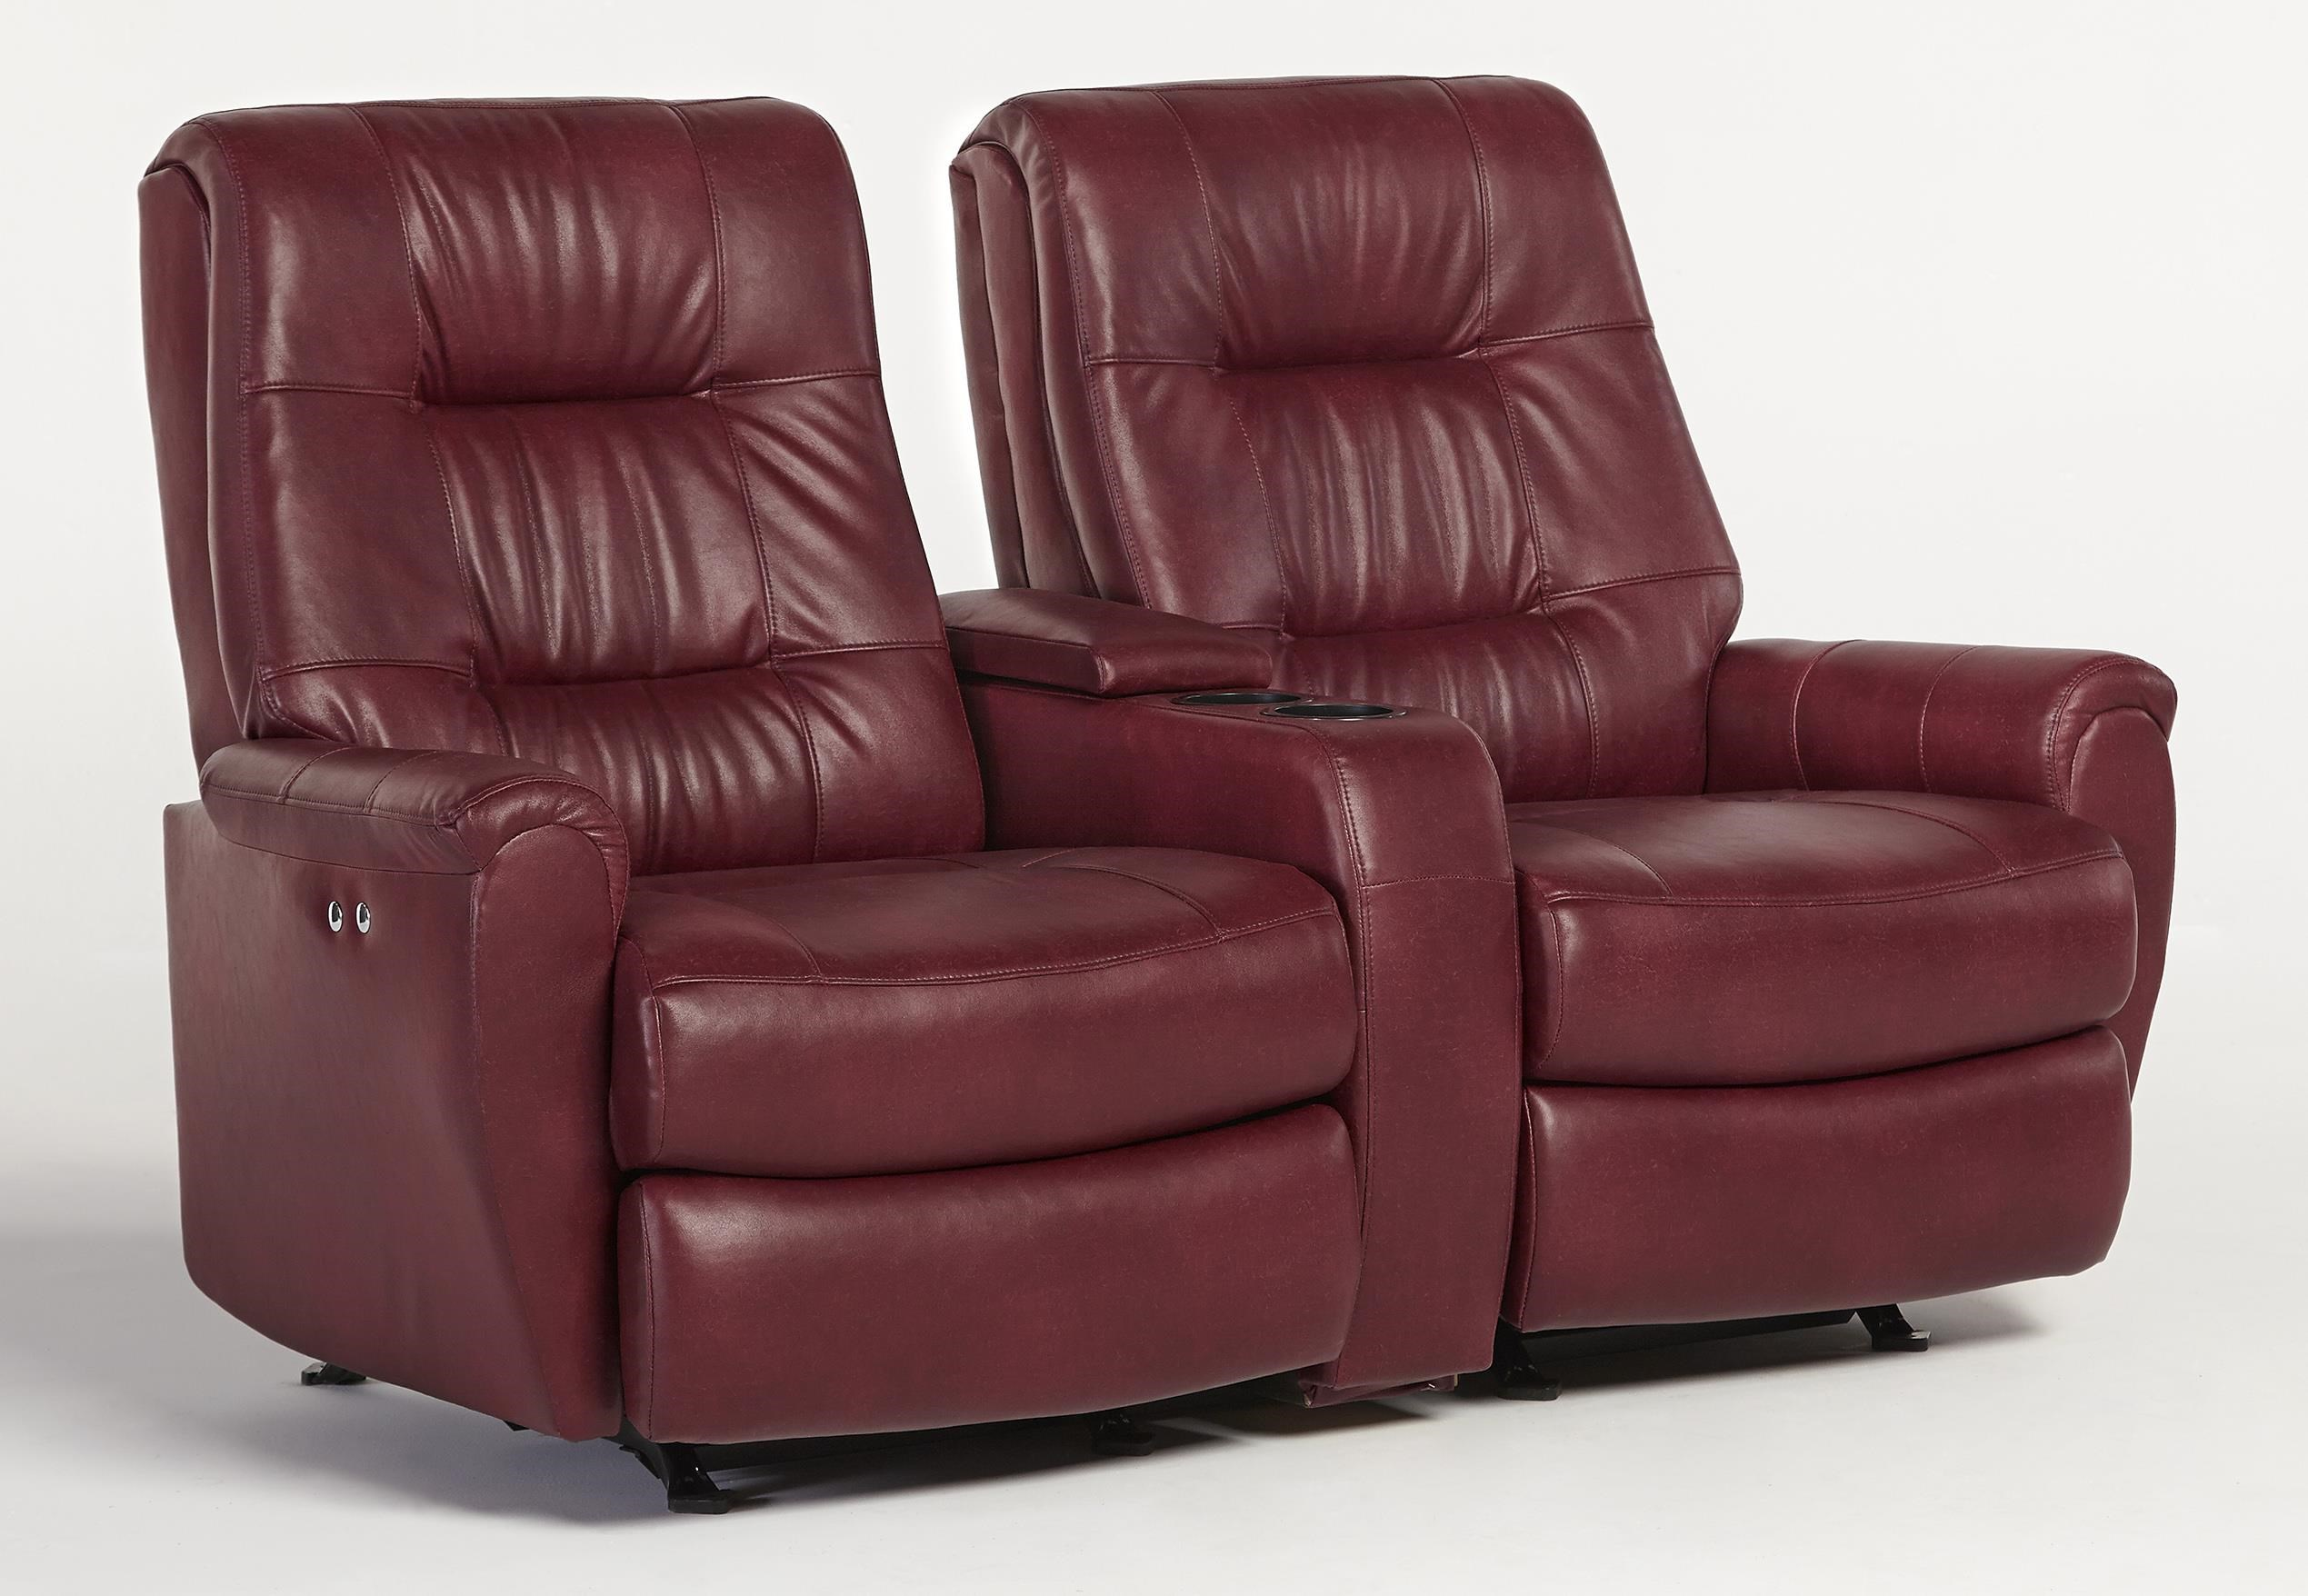 Best Home Furnishings Felicia Small Scale Power Rocking Reclining Loveseat  With Drink And Storage Console